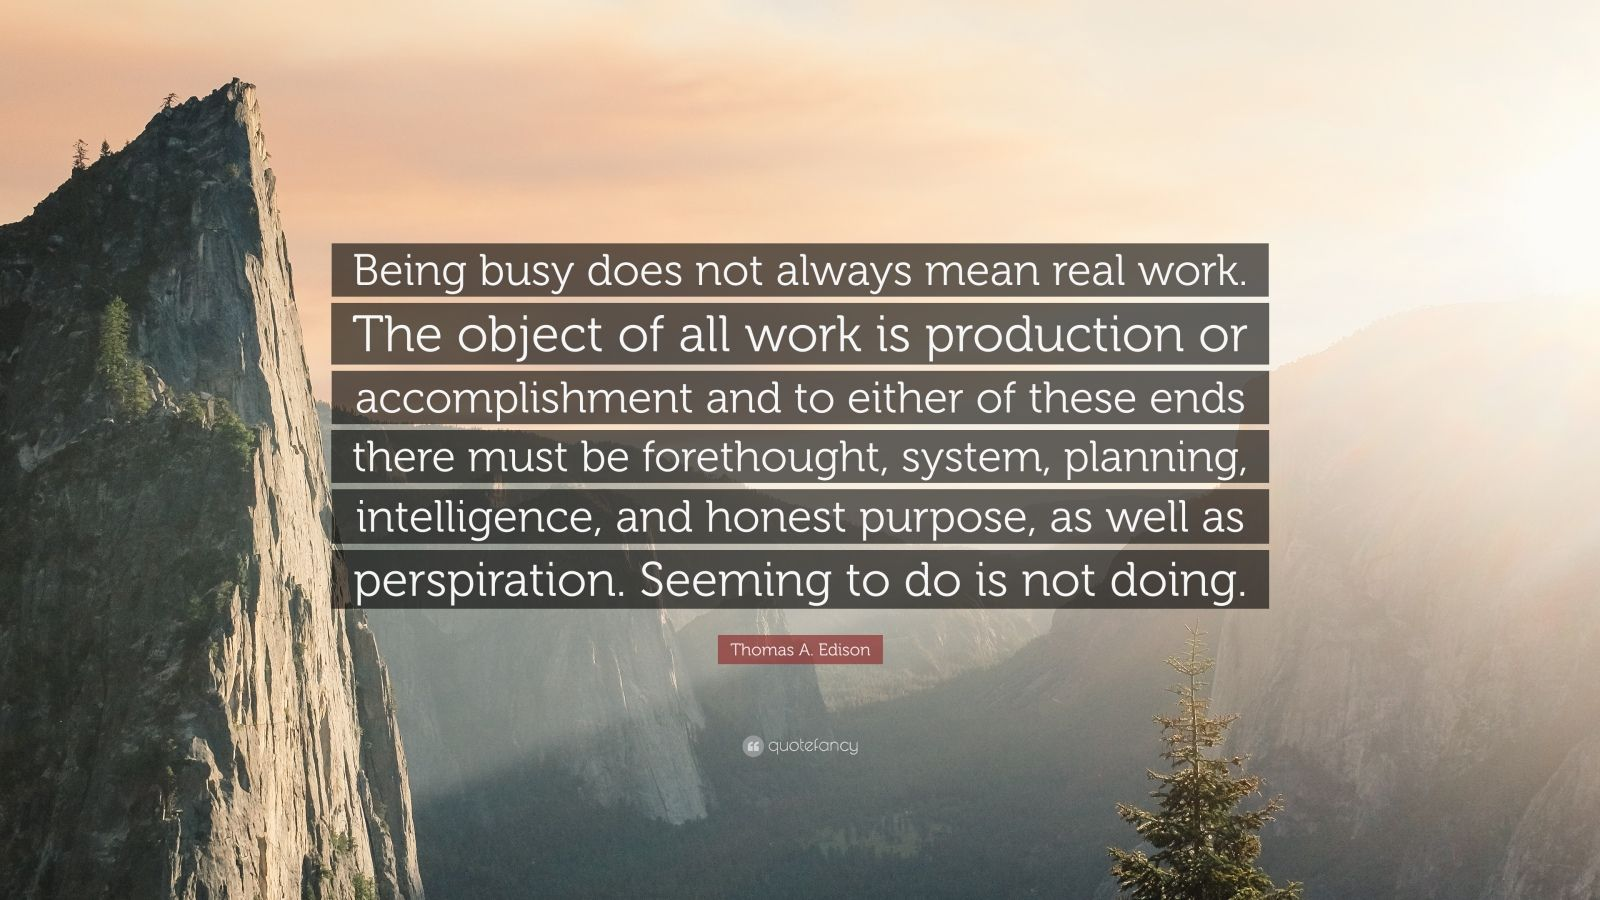 """Thomas A. Edison Quote: """"Being busy does not always mean real work. The object of all work is production or accomplishment and to either of these ends there must be forethought, system, planning, intelligence, and honest purpose, as well as perspiration. Seeming to do is not doing."""""""